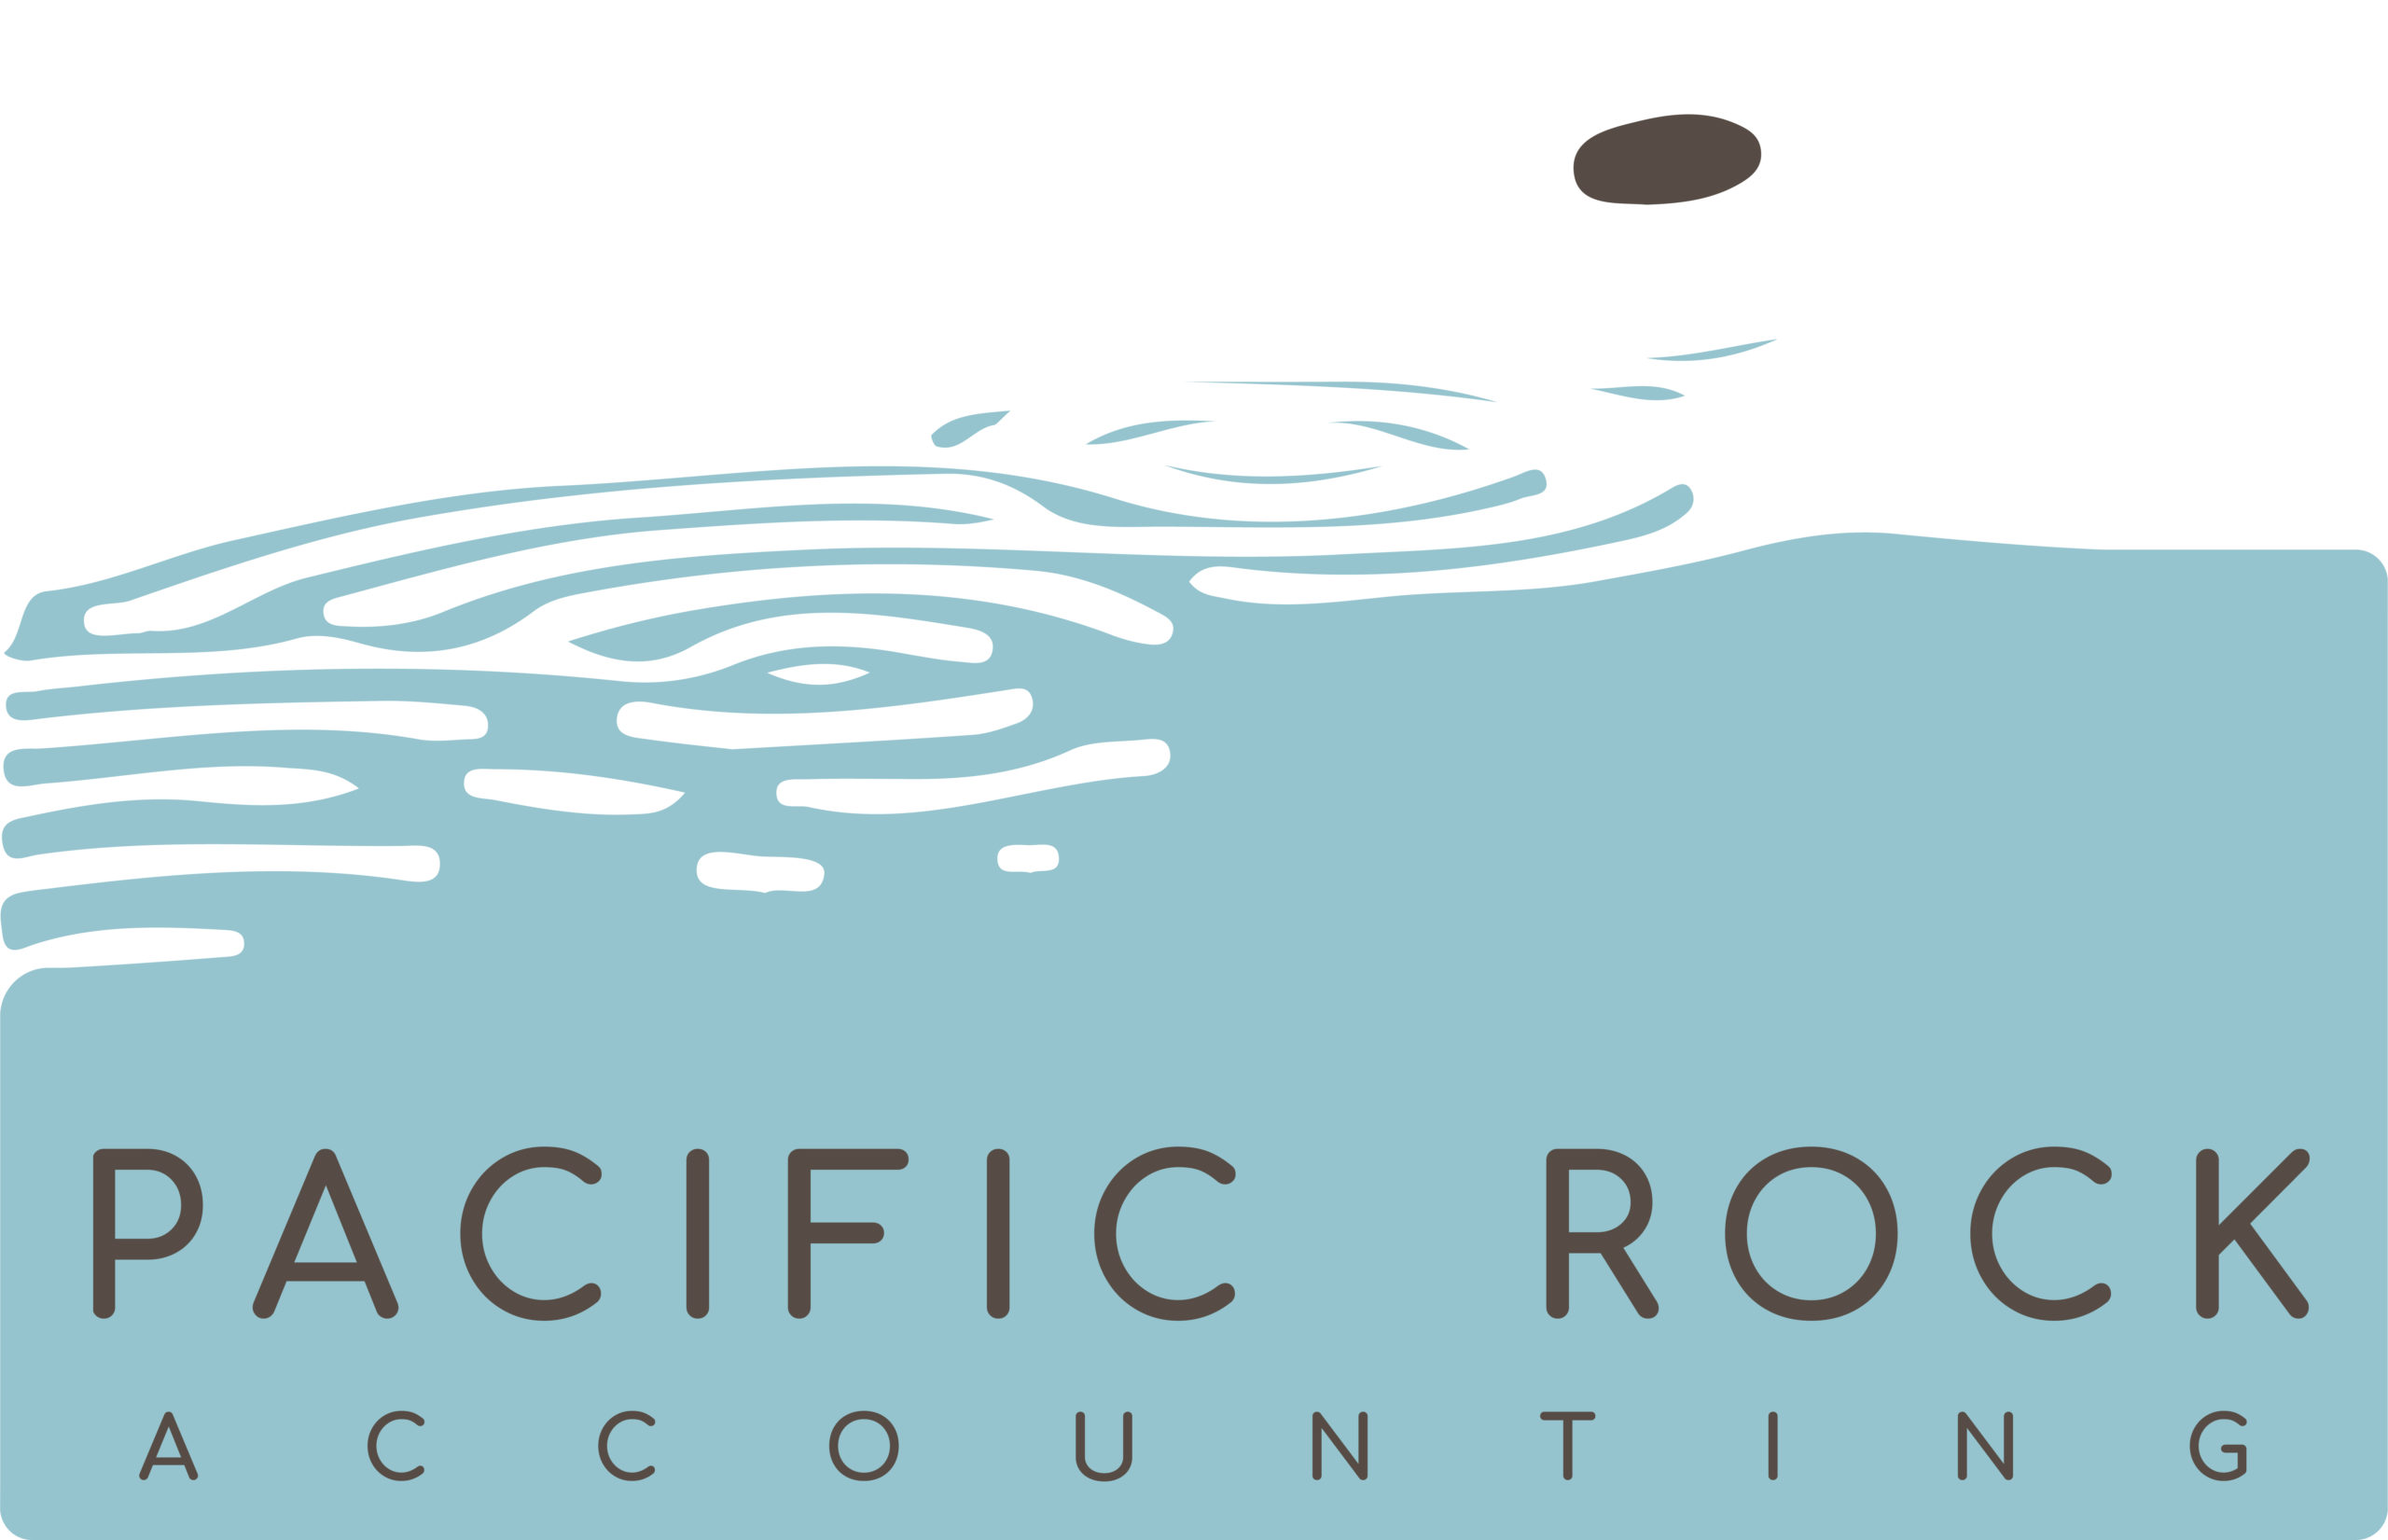 Pacific Rock Accounting Logo